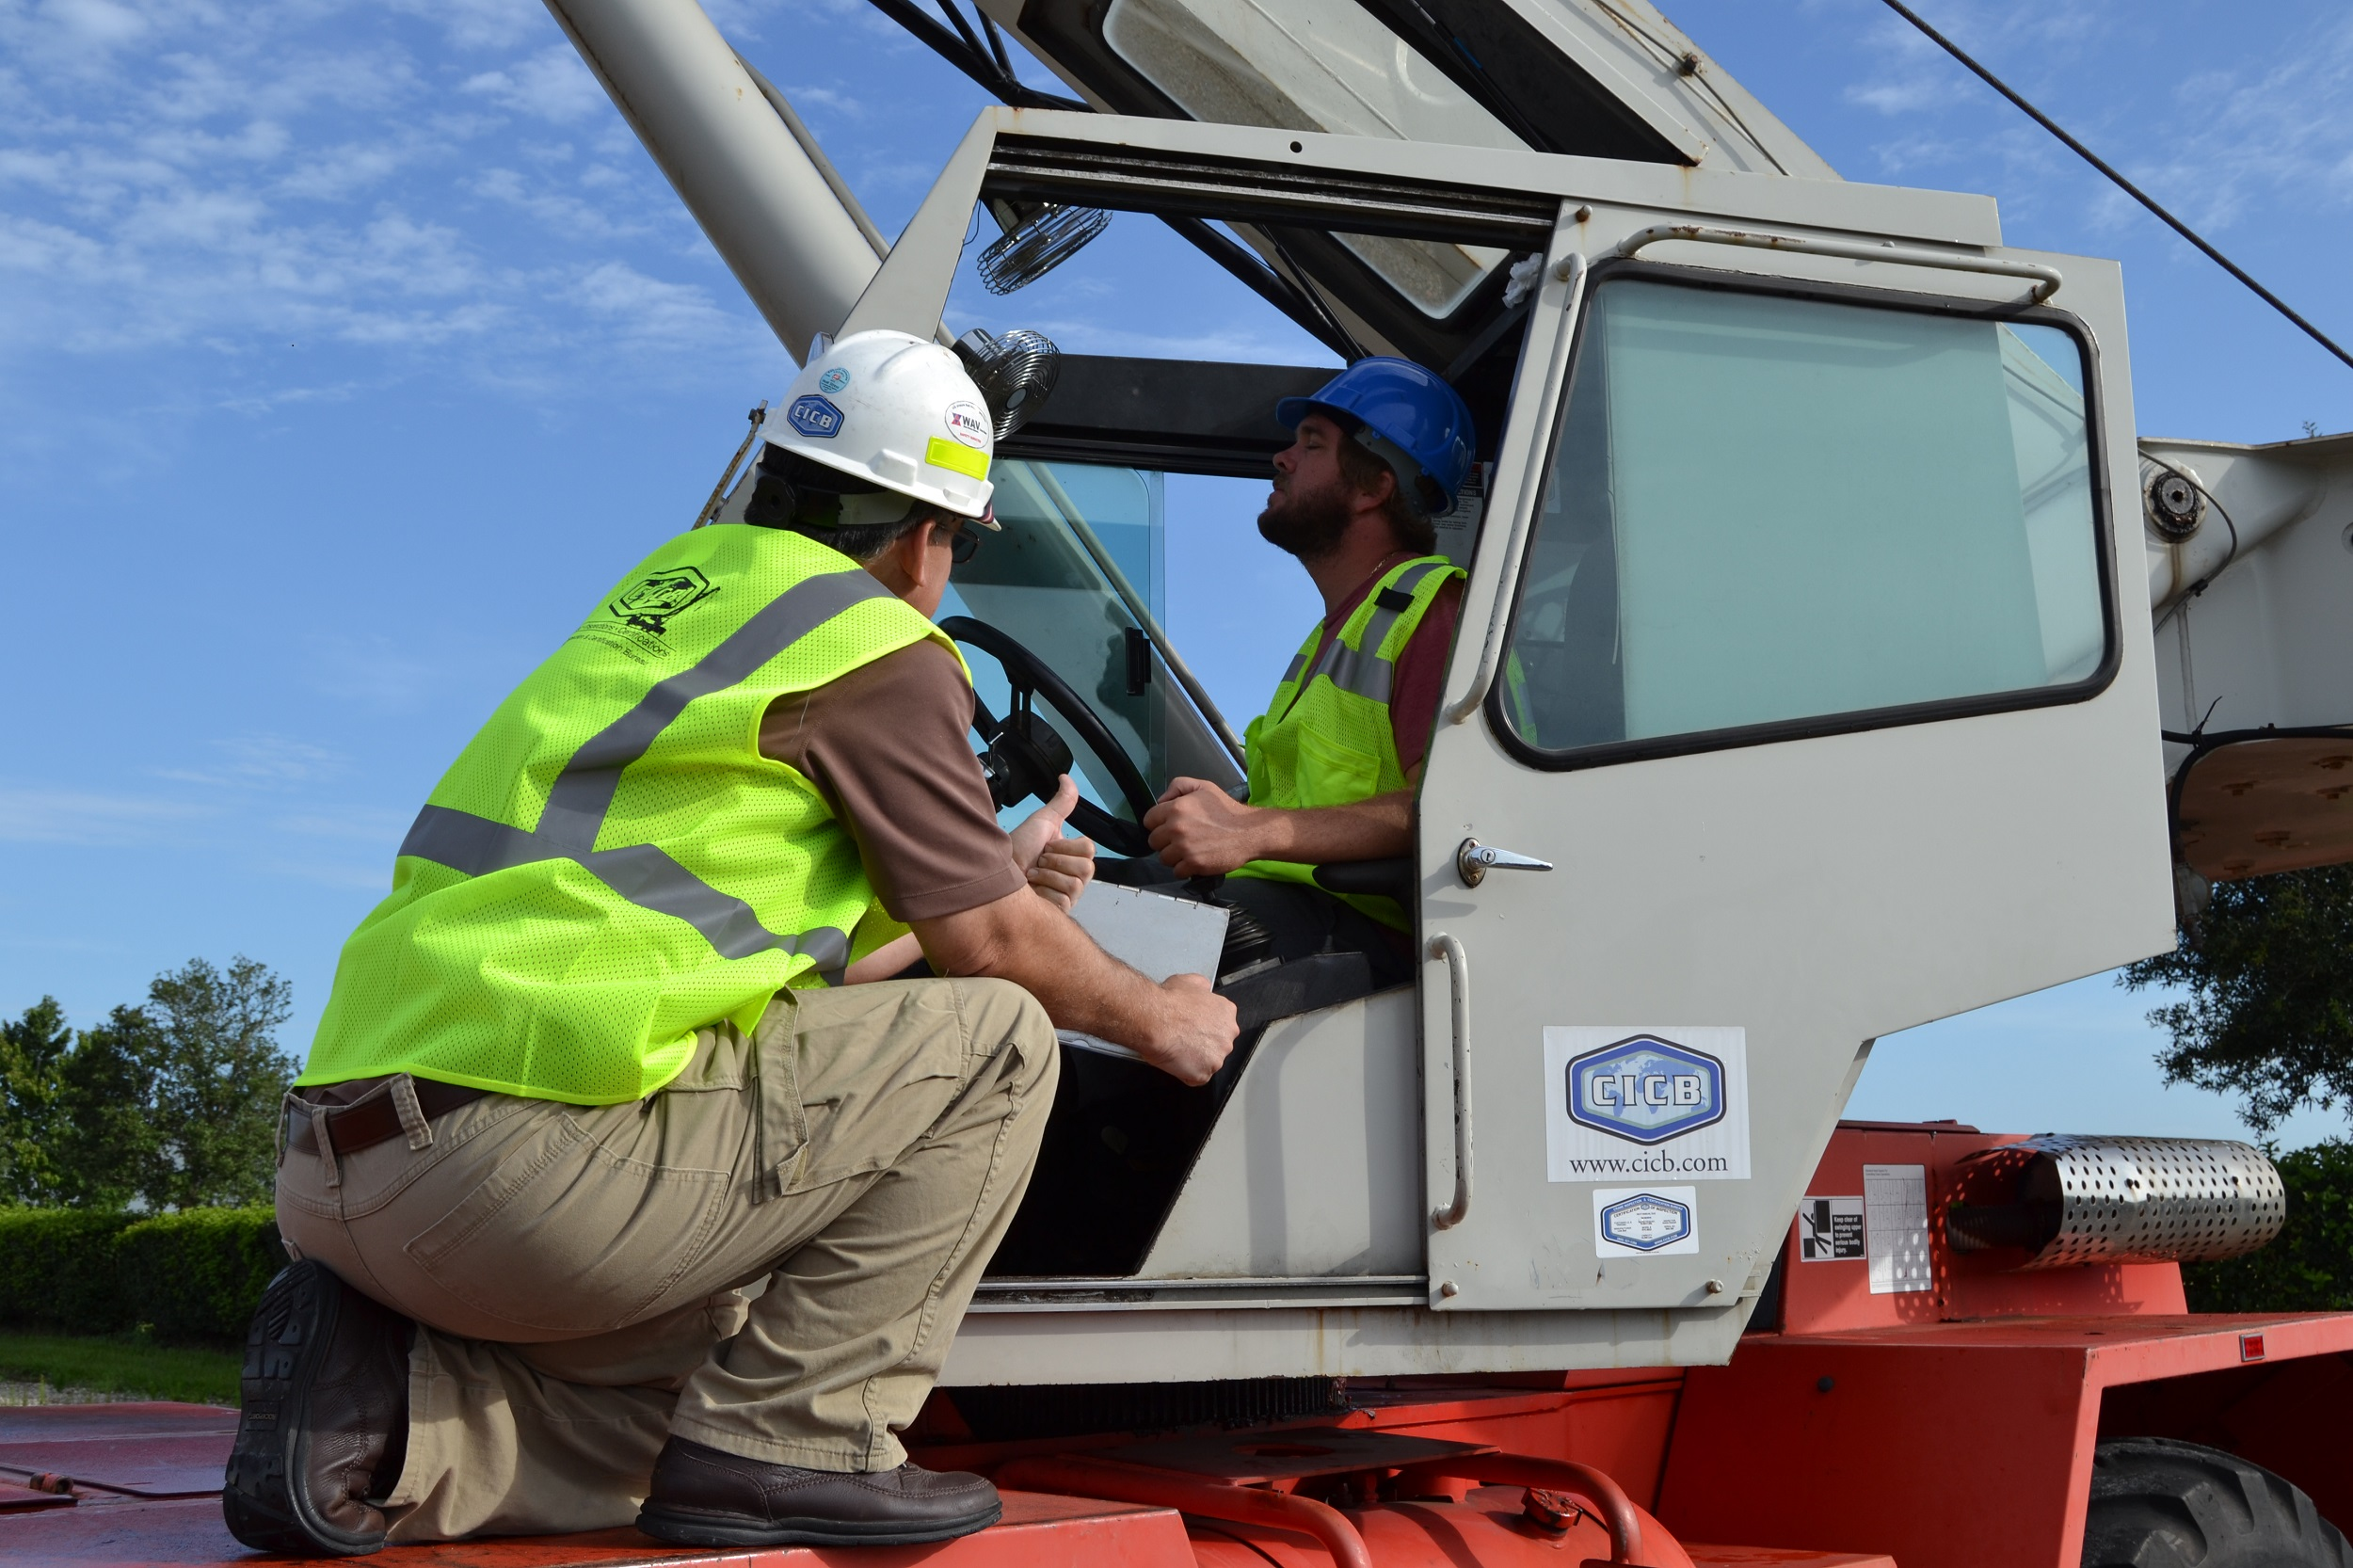 Mobile Crane Inspector Certification : Crane inspection certification bureau expands safety